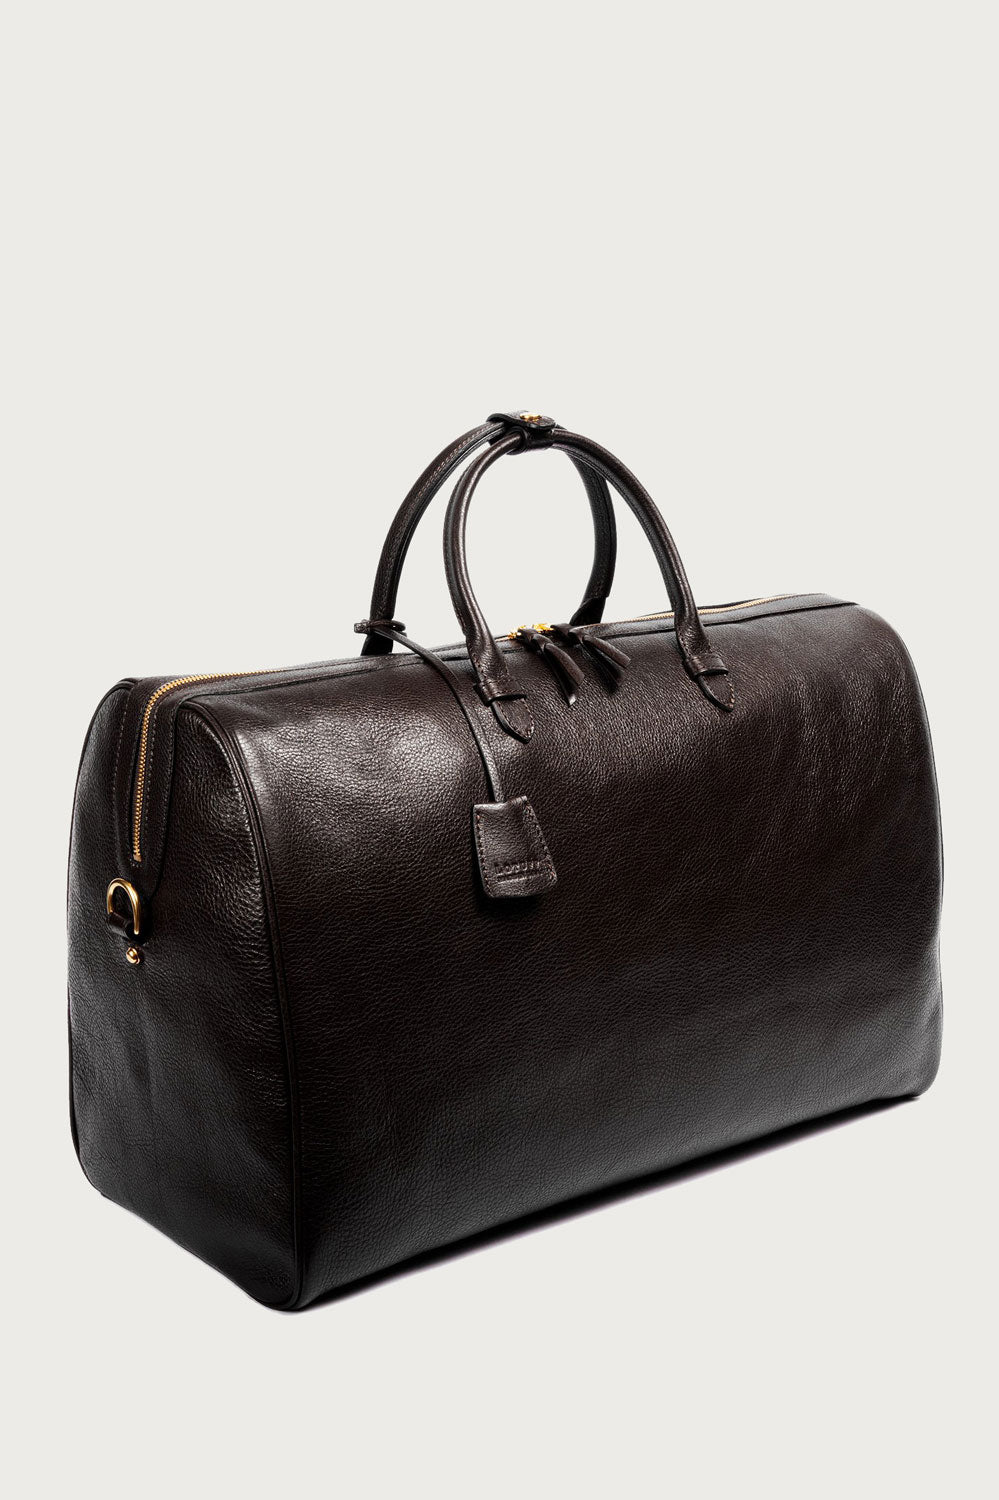 Lotuff Leather The No.12 Weekender in Chocolate - Vert & Vogue